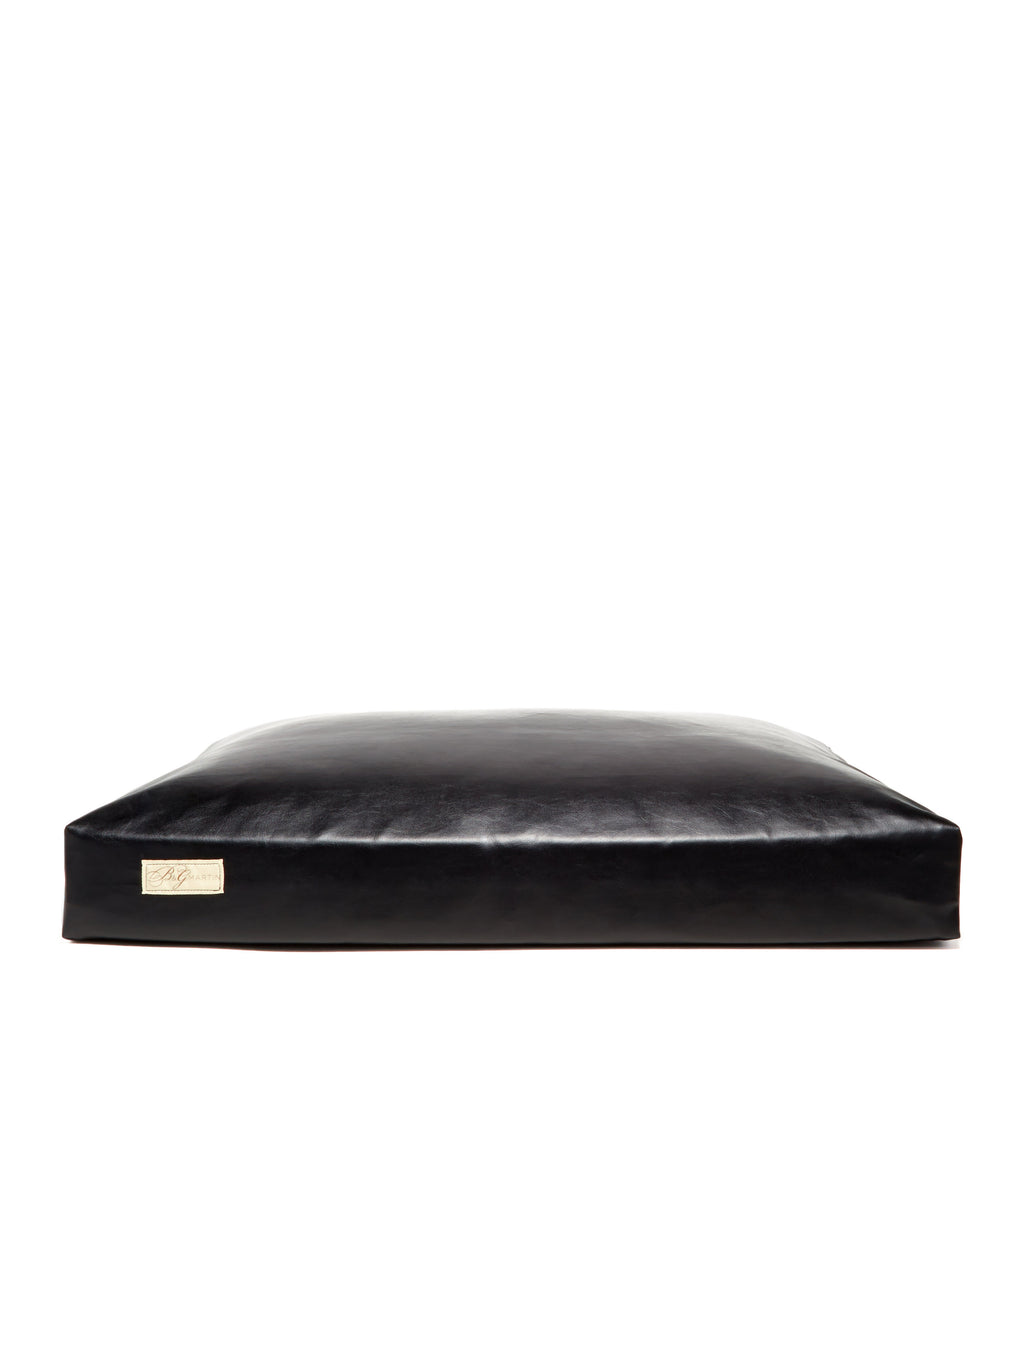 B&G Martin Faux Leather Vegan Black Ultra Luxe Pet Dog Bed (Personalize)